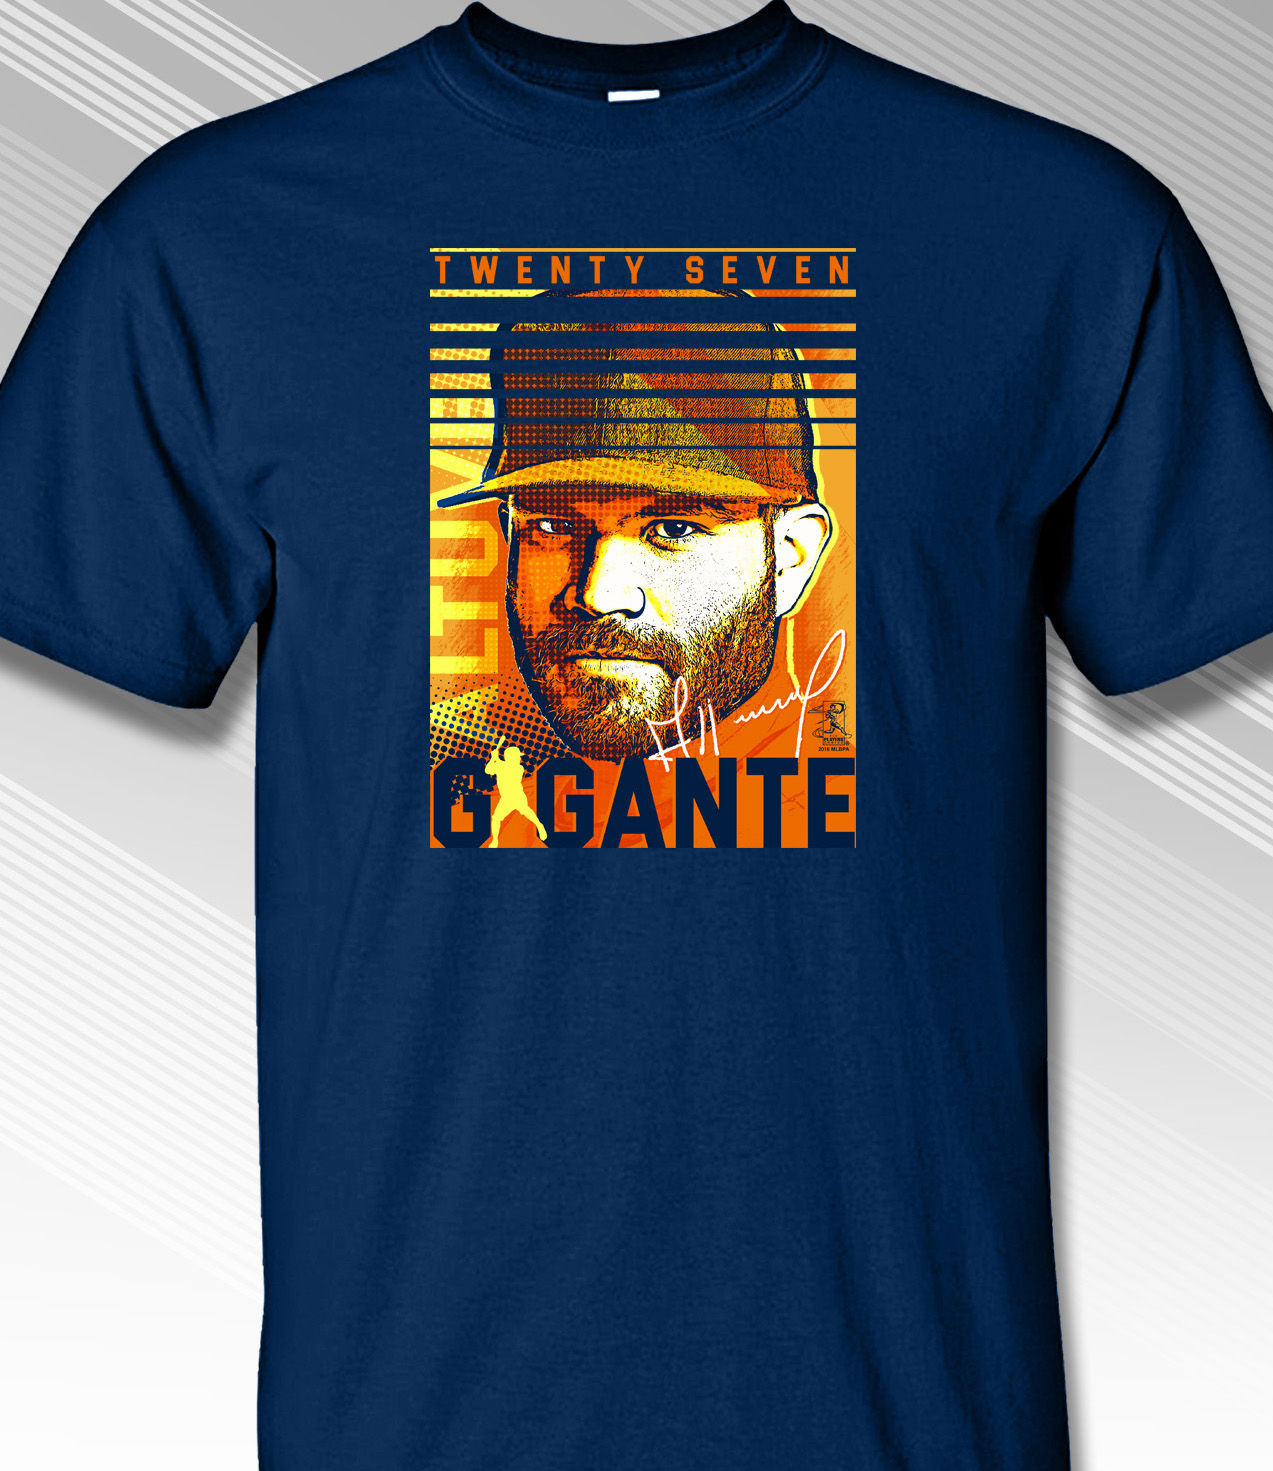 Jose Altuve Gigante Game Face T-Shirt<br>Short or Long Sleeve<br>Youth Med to Adult 4X